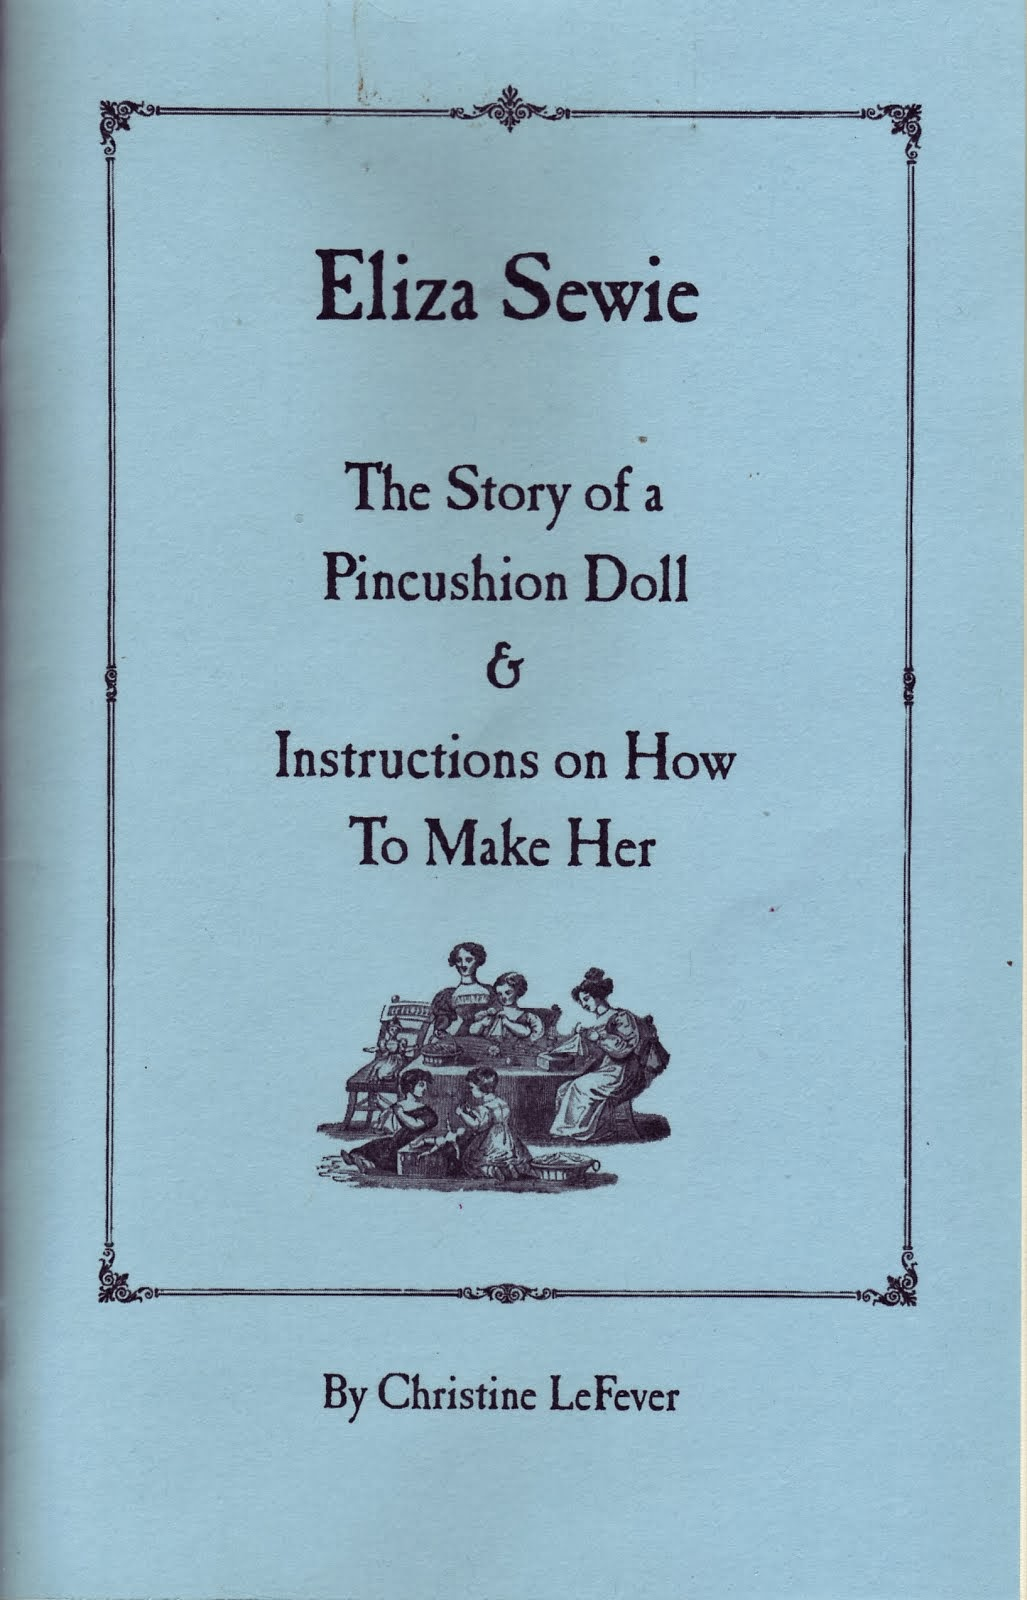 Eliza Sewie Pattern Book and Story